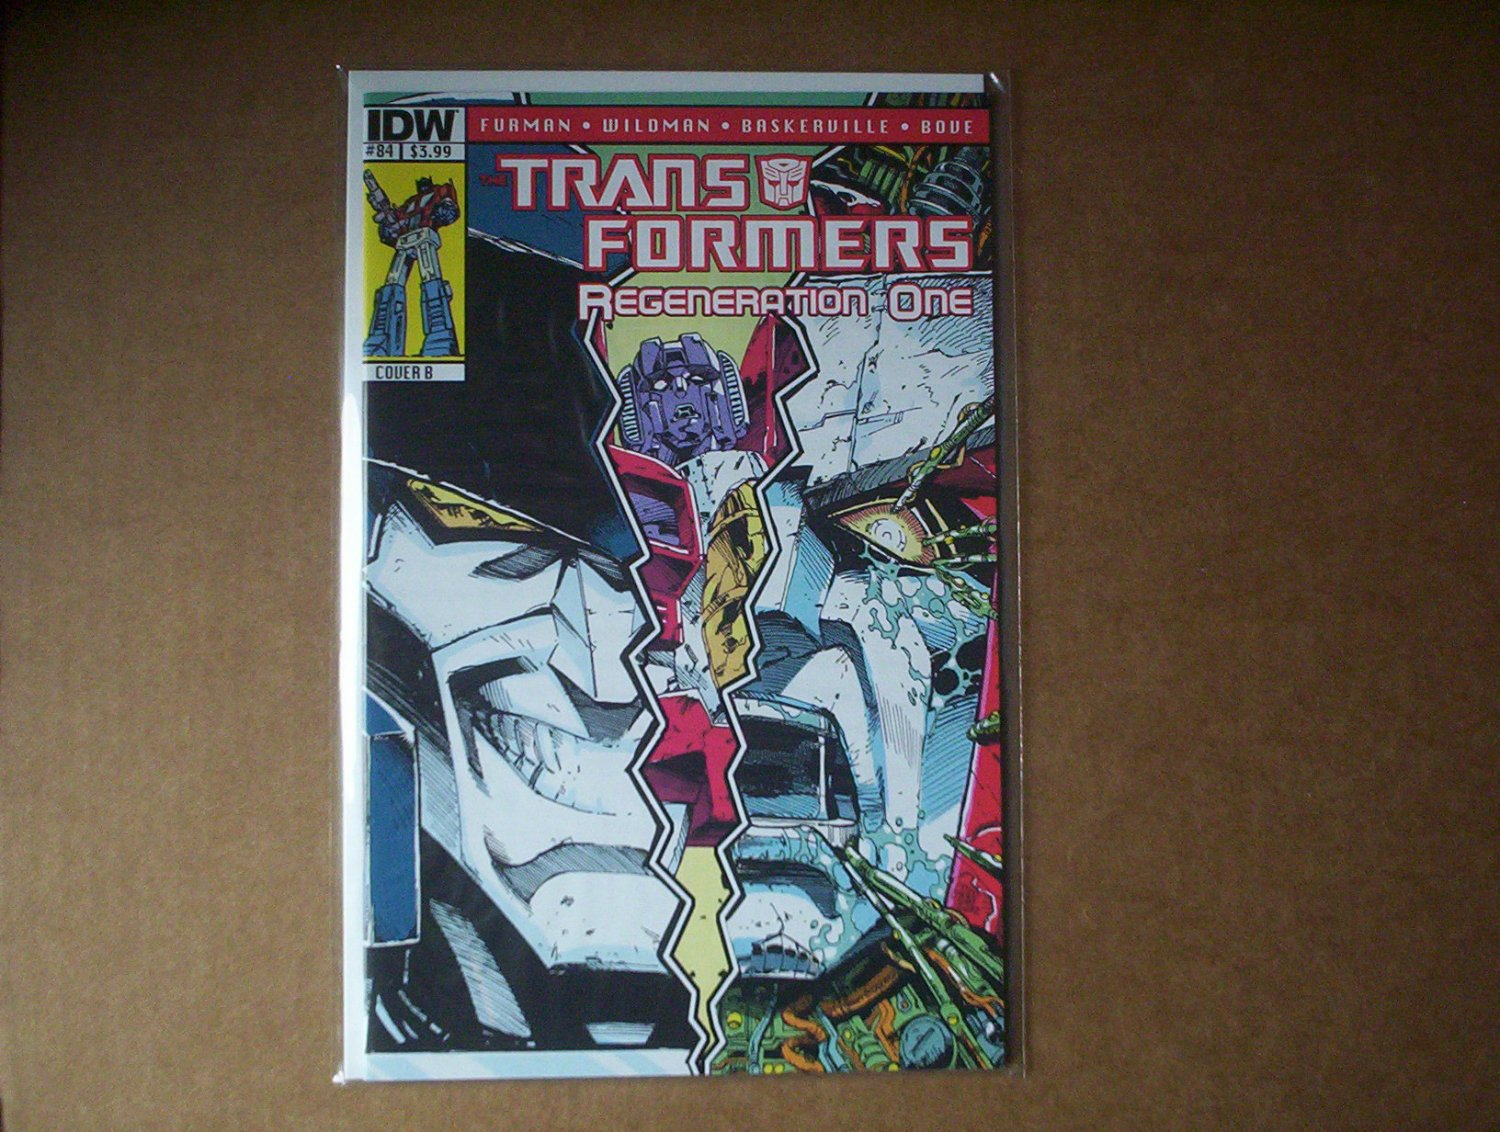 Transformers: Regeneration One #84 Cover B